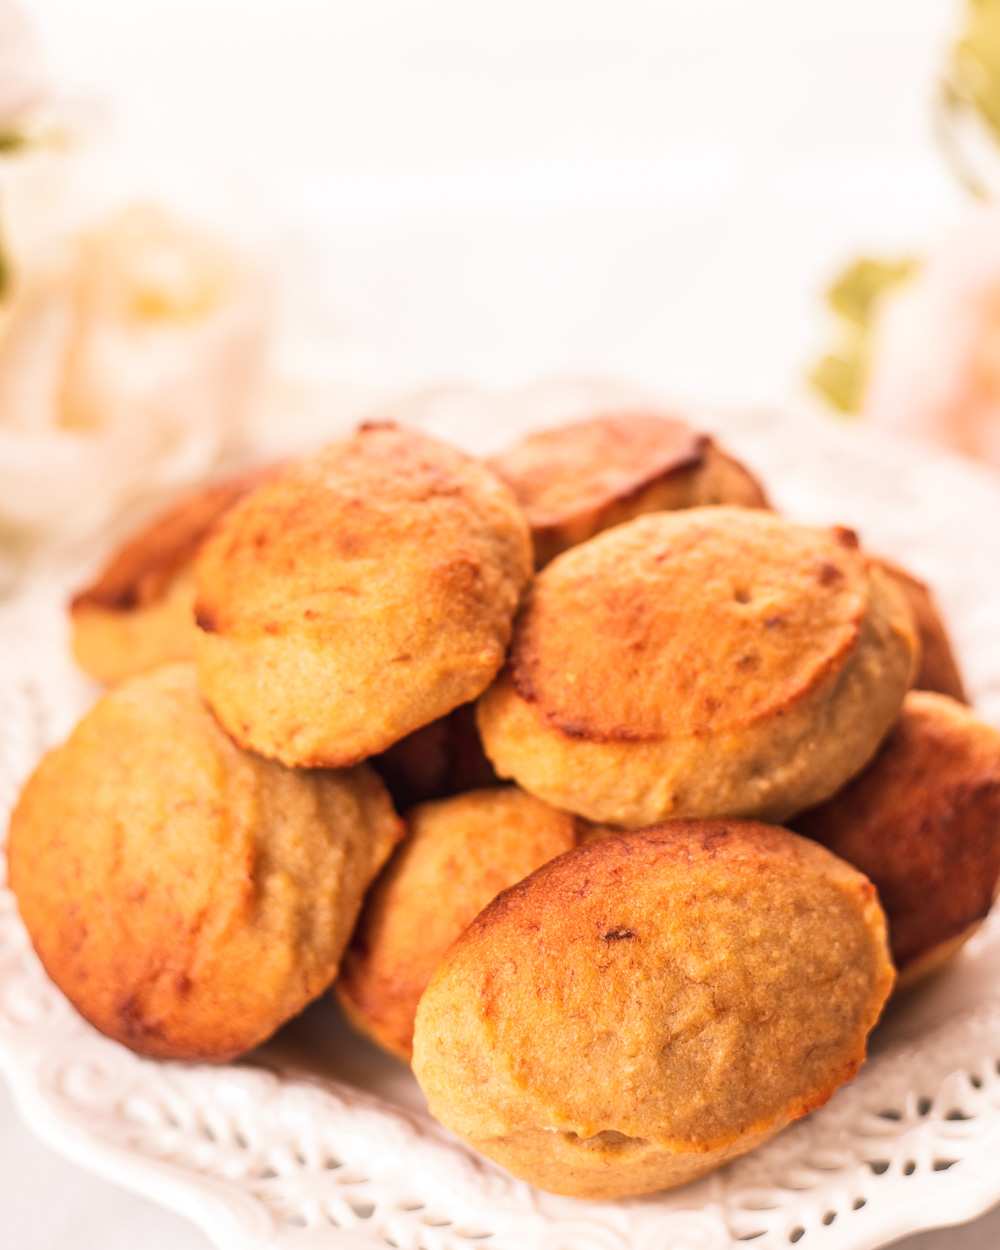 The Healthy Chewy Banana Cookies recipe for cookies that are easy to make, low-calorie, low-fat and all-natural. Serve them as healthy dessert, snack or breakfast!